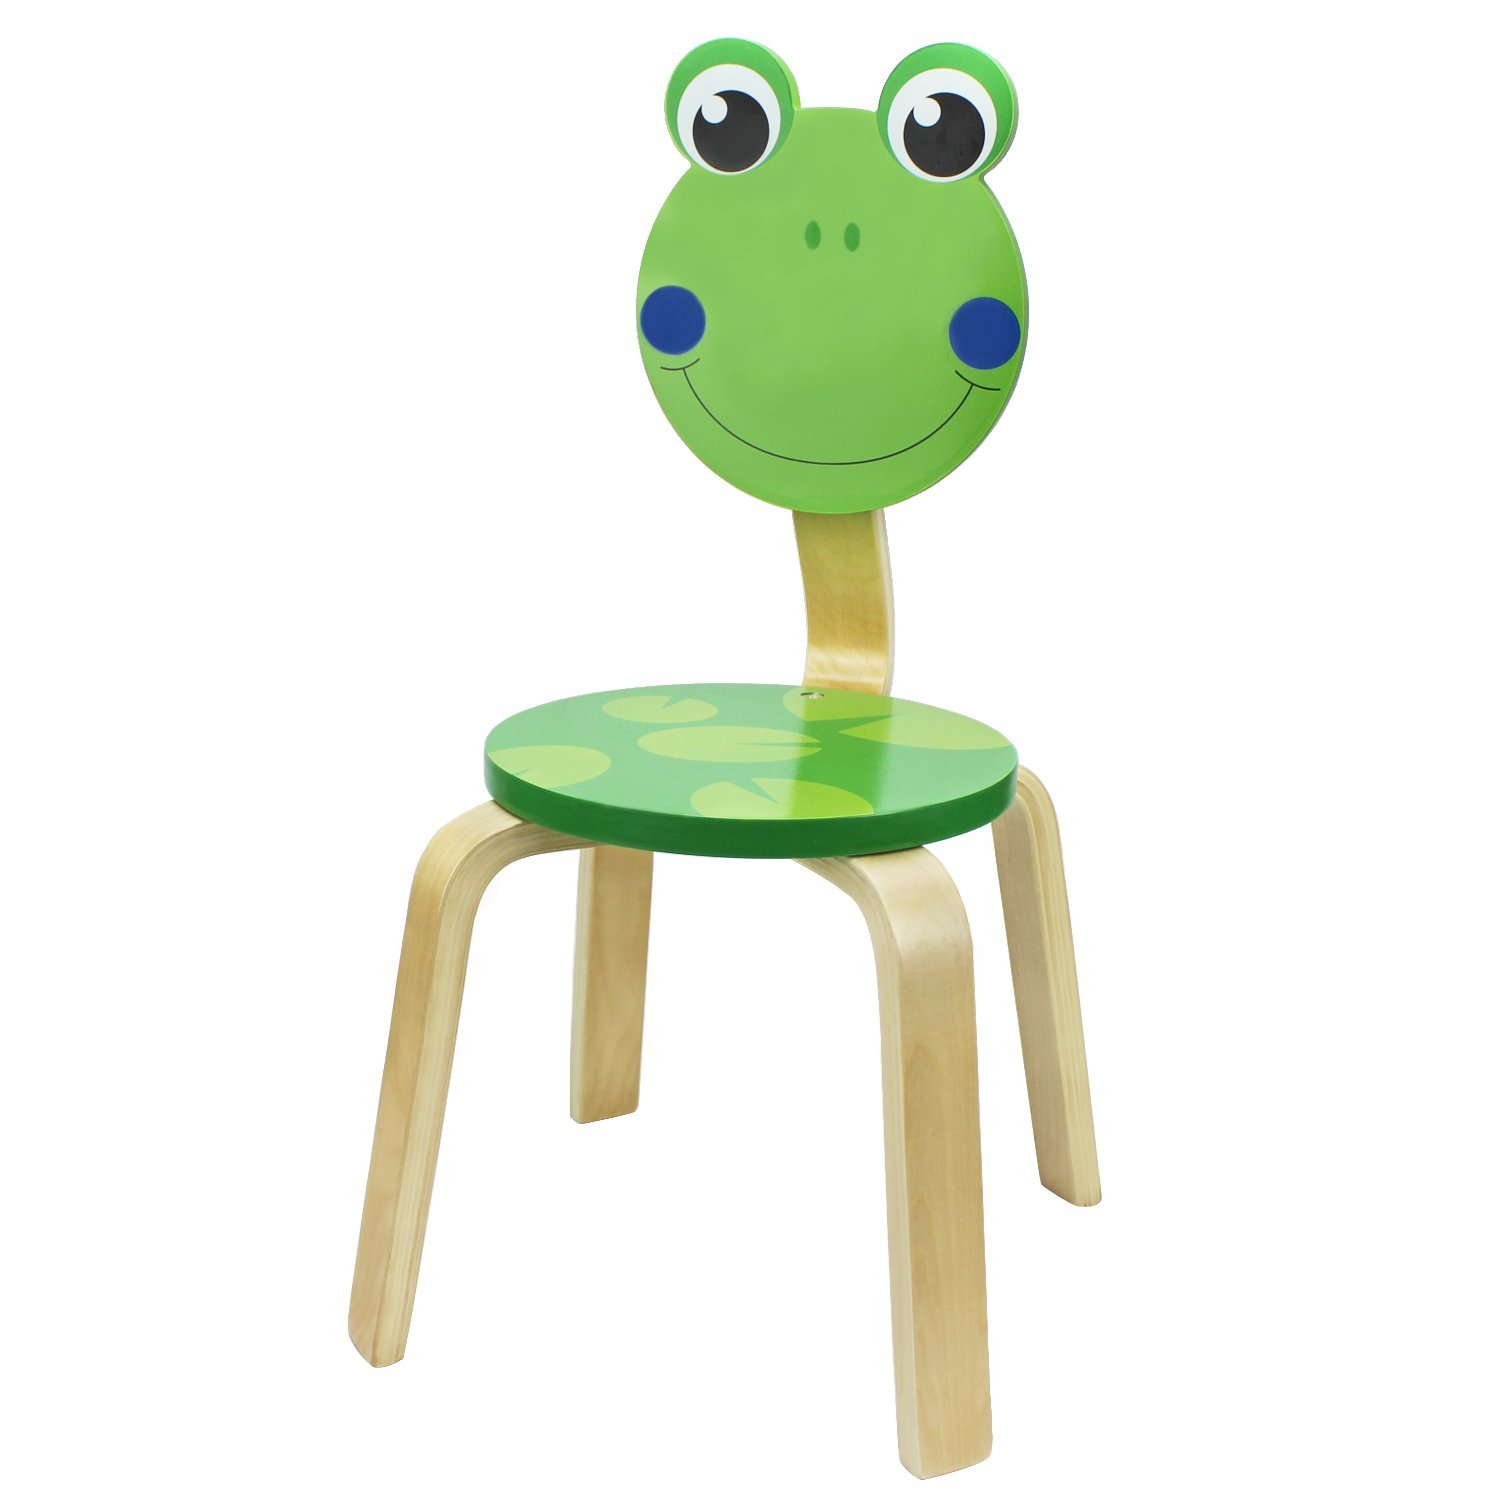 Childrens Chairs Iplay Ilearn Chairs For Kids Playroom Chairs - Animal-chairs-for-children